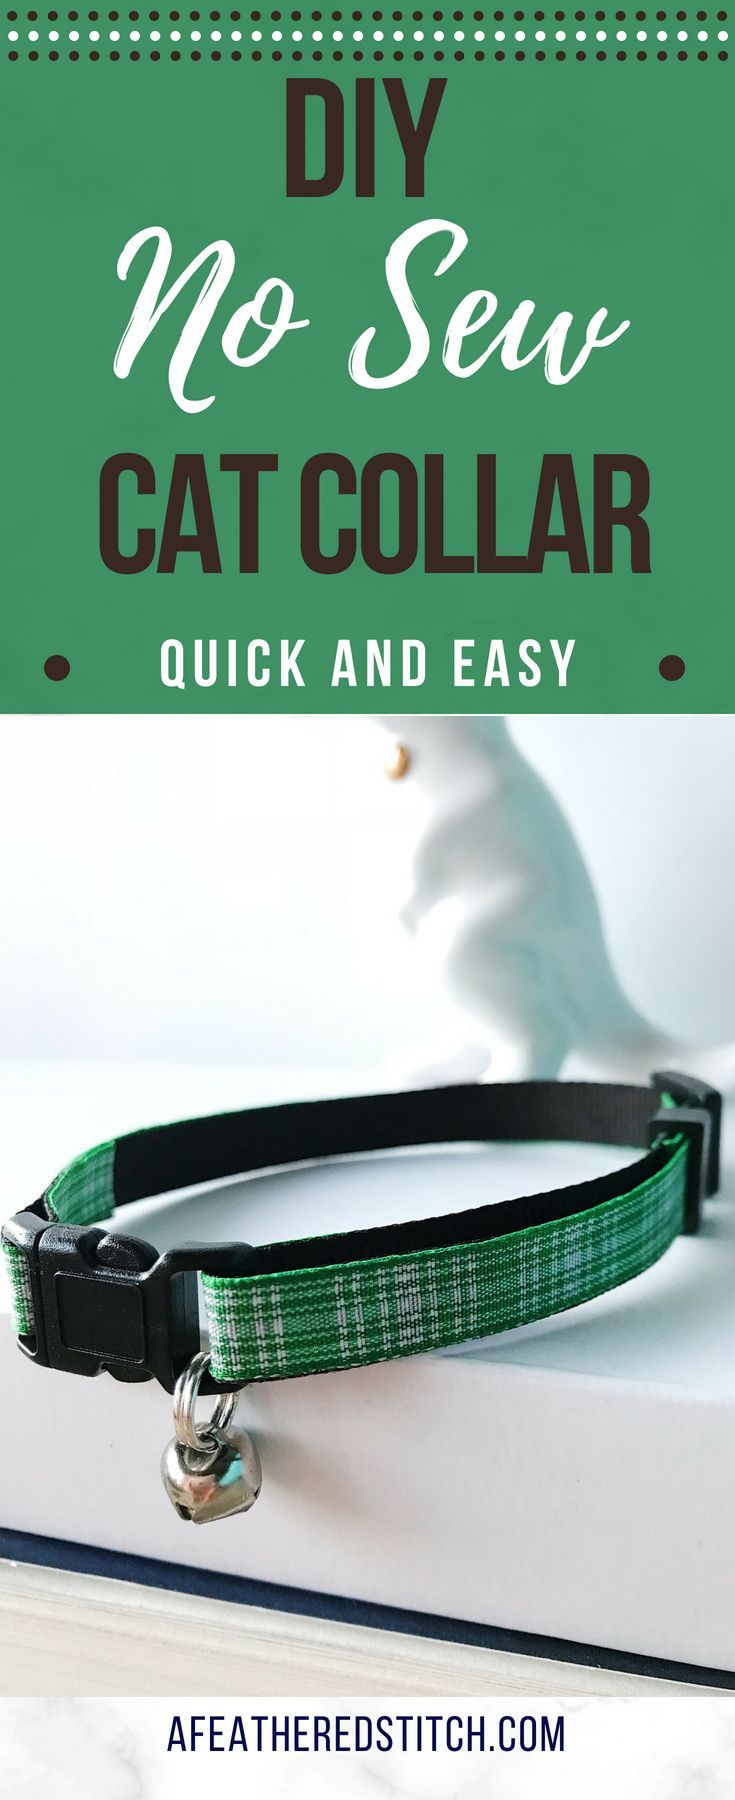 Diy No Sew Cat Collar With Bell A Feathered Stitch Diy Dog Collar Cat Collars Diy Cat Collars